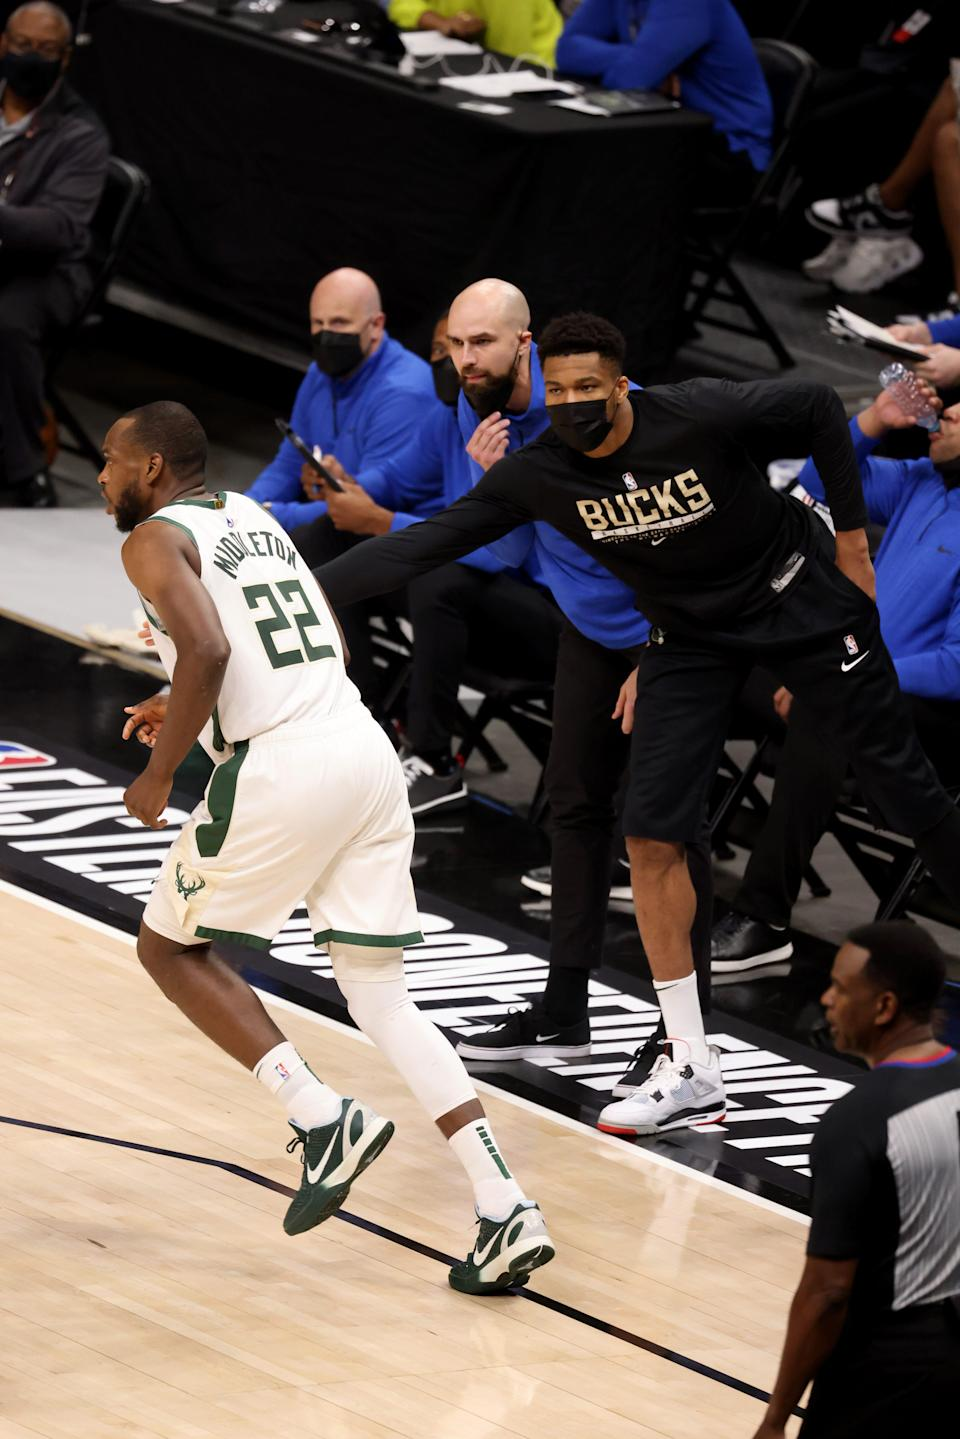 Giannis Antetokounmpo congratulates Khris Middleton after a basket during the third quarter of the Bucks' Game 6 win over the Hawks.